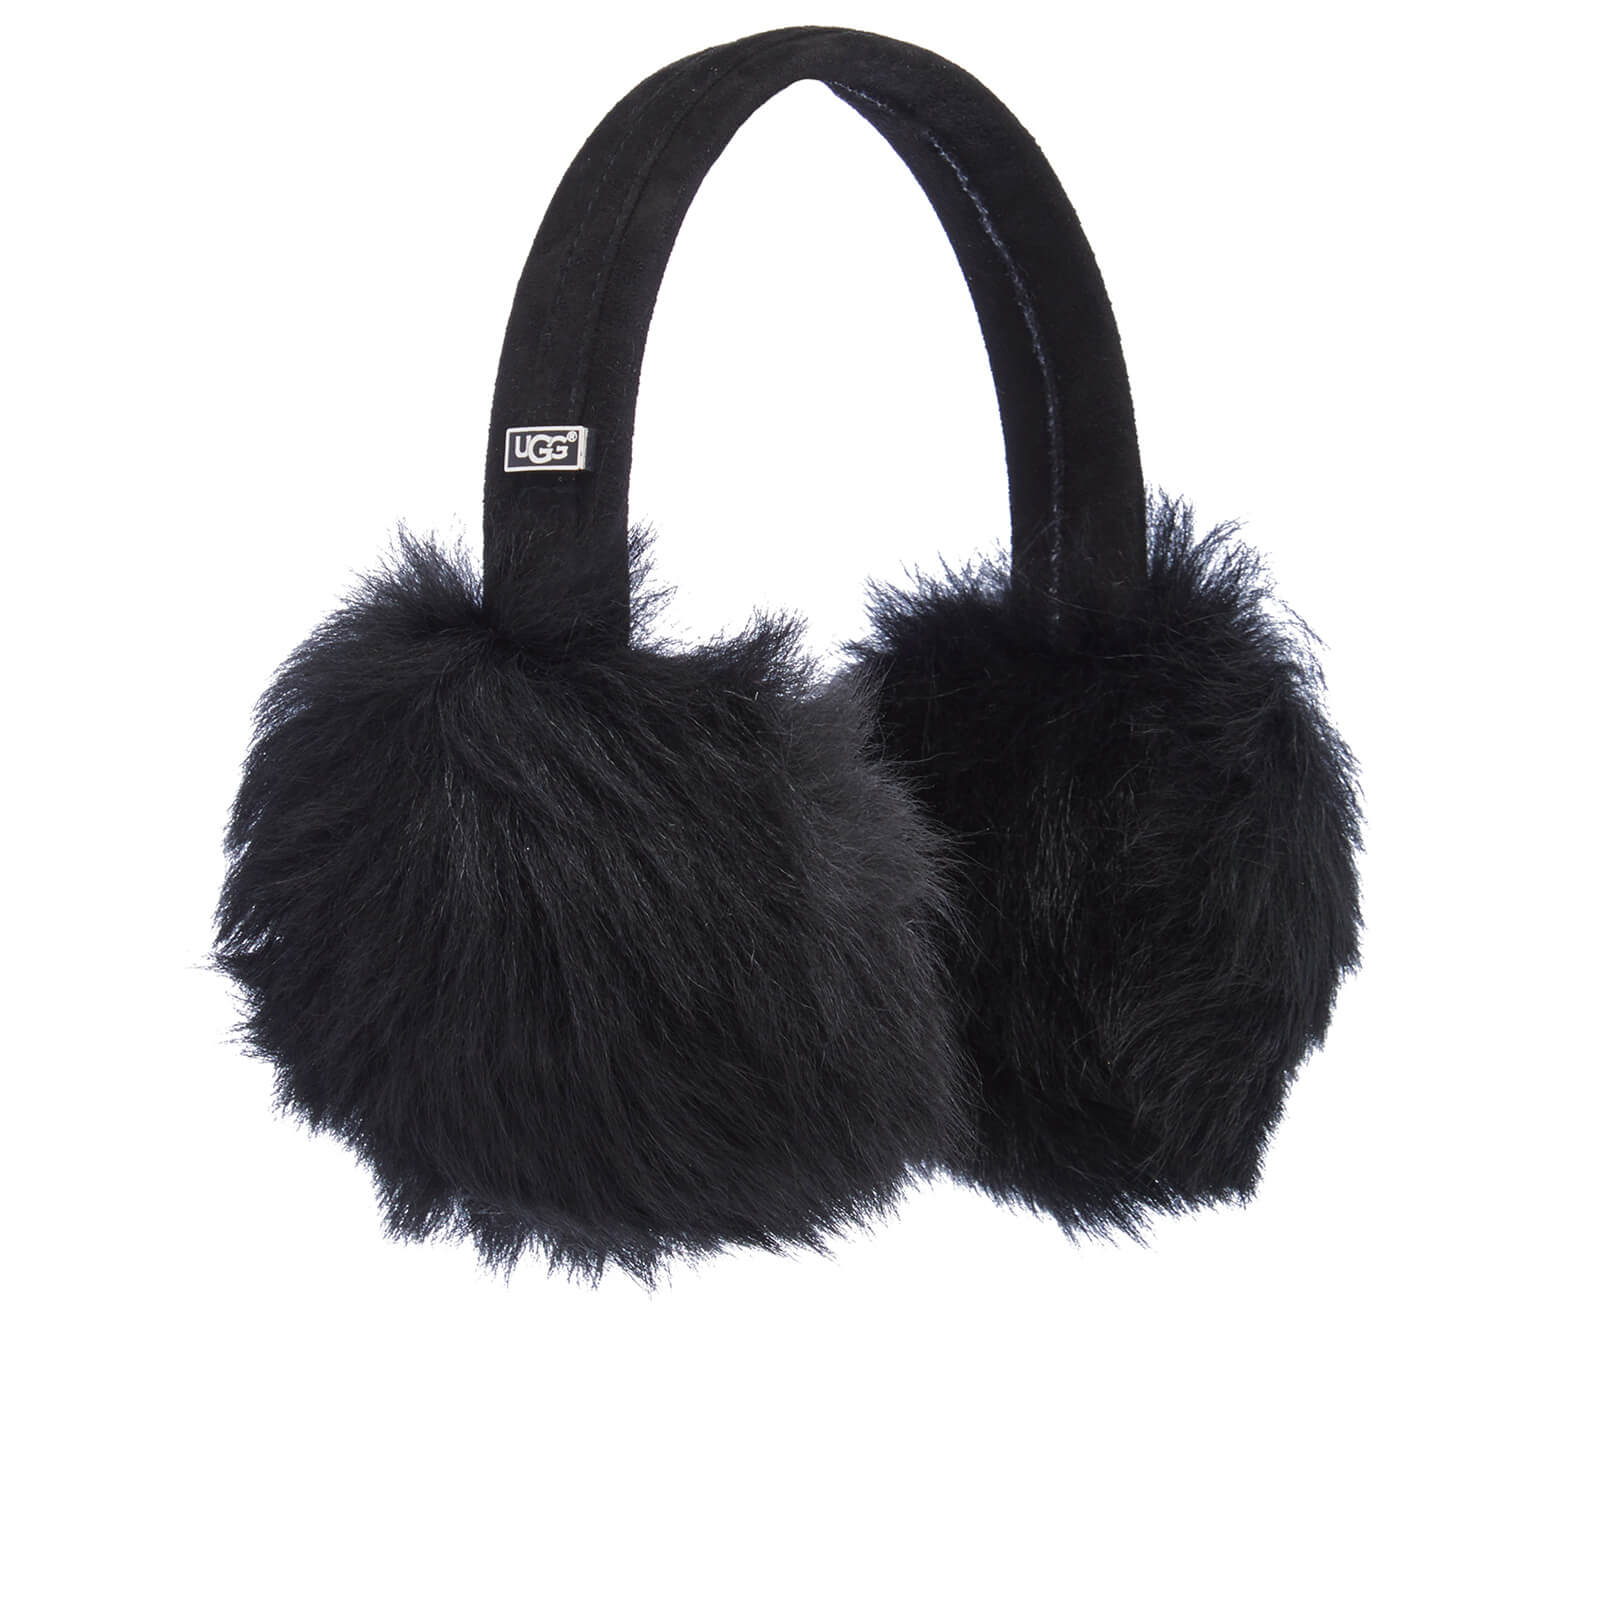 adcc608768b UGG Women's Classic Wired Sheepskin Earmuffs - Black